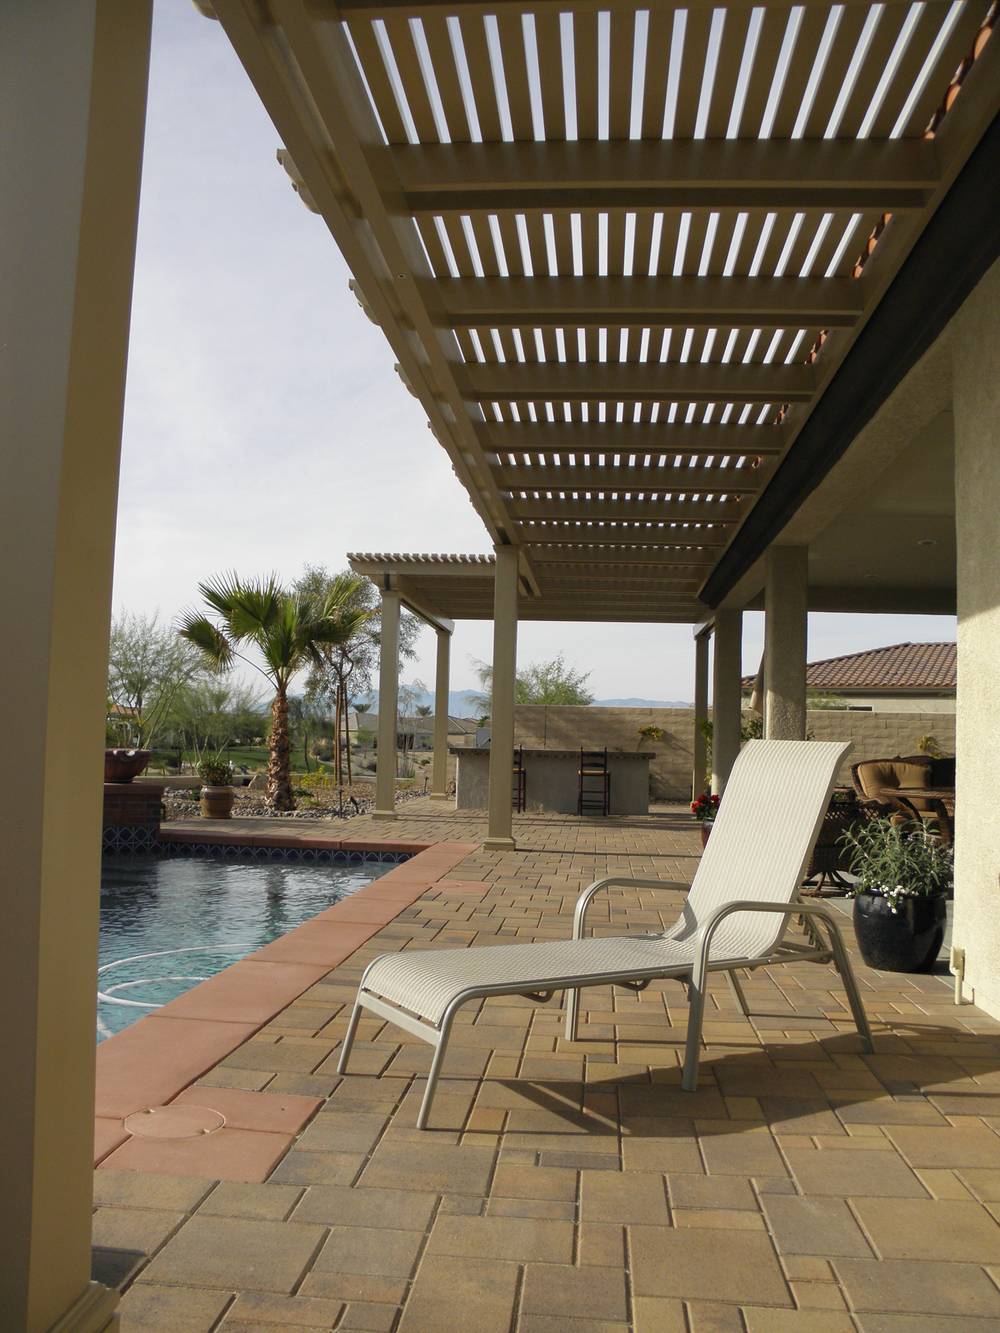 Custom Lattice Patio Cover and BBQ Patio Cover, La Quinta, CA